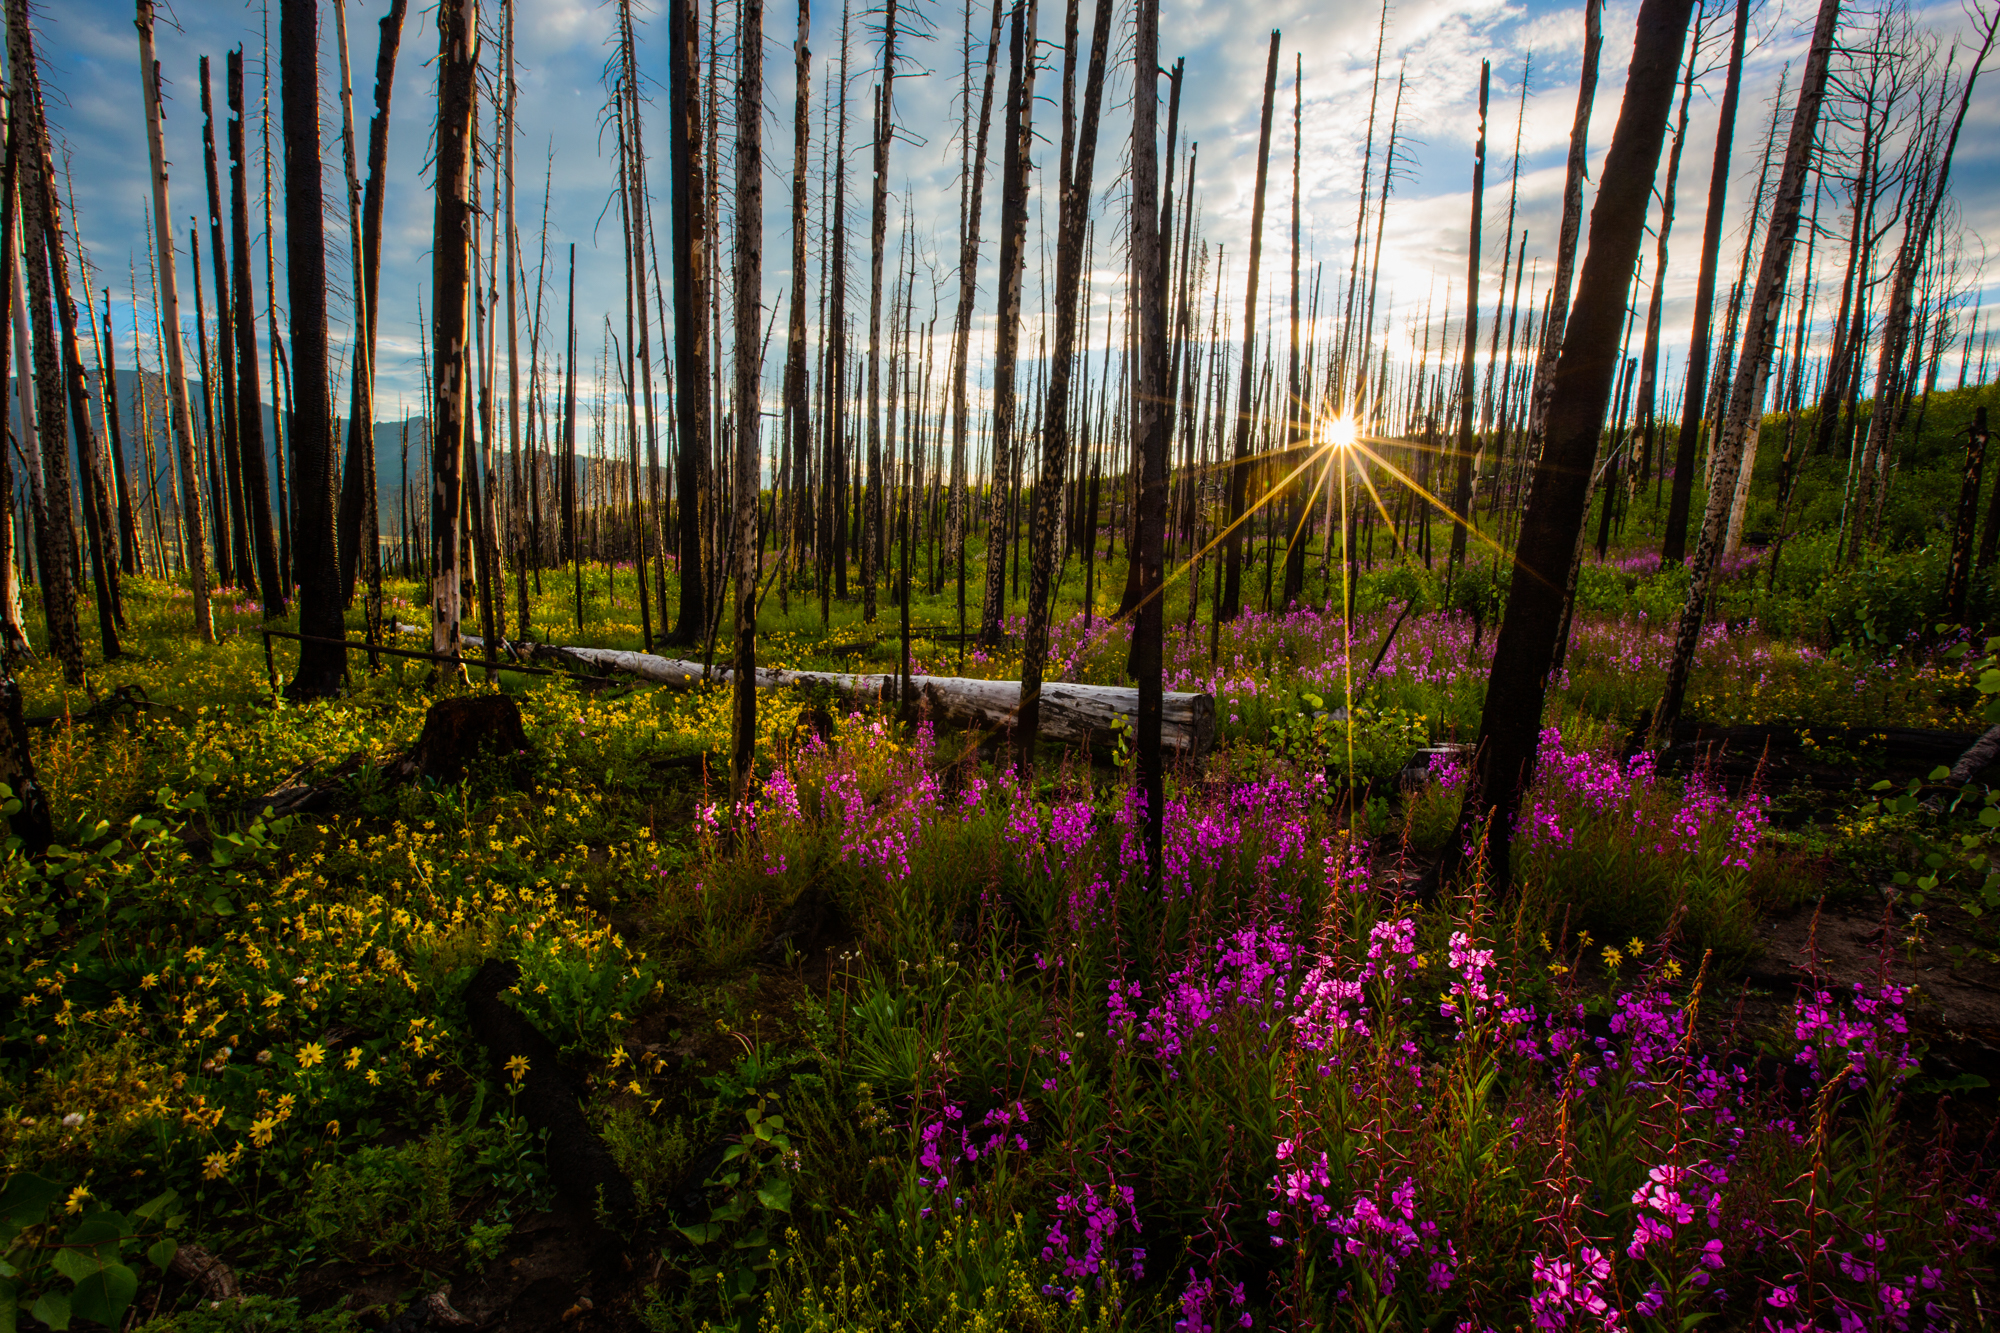 rio-grande-national-forest-fire-papoose-fork.jpg